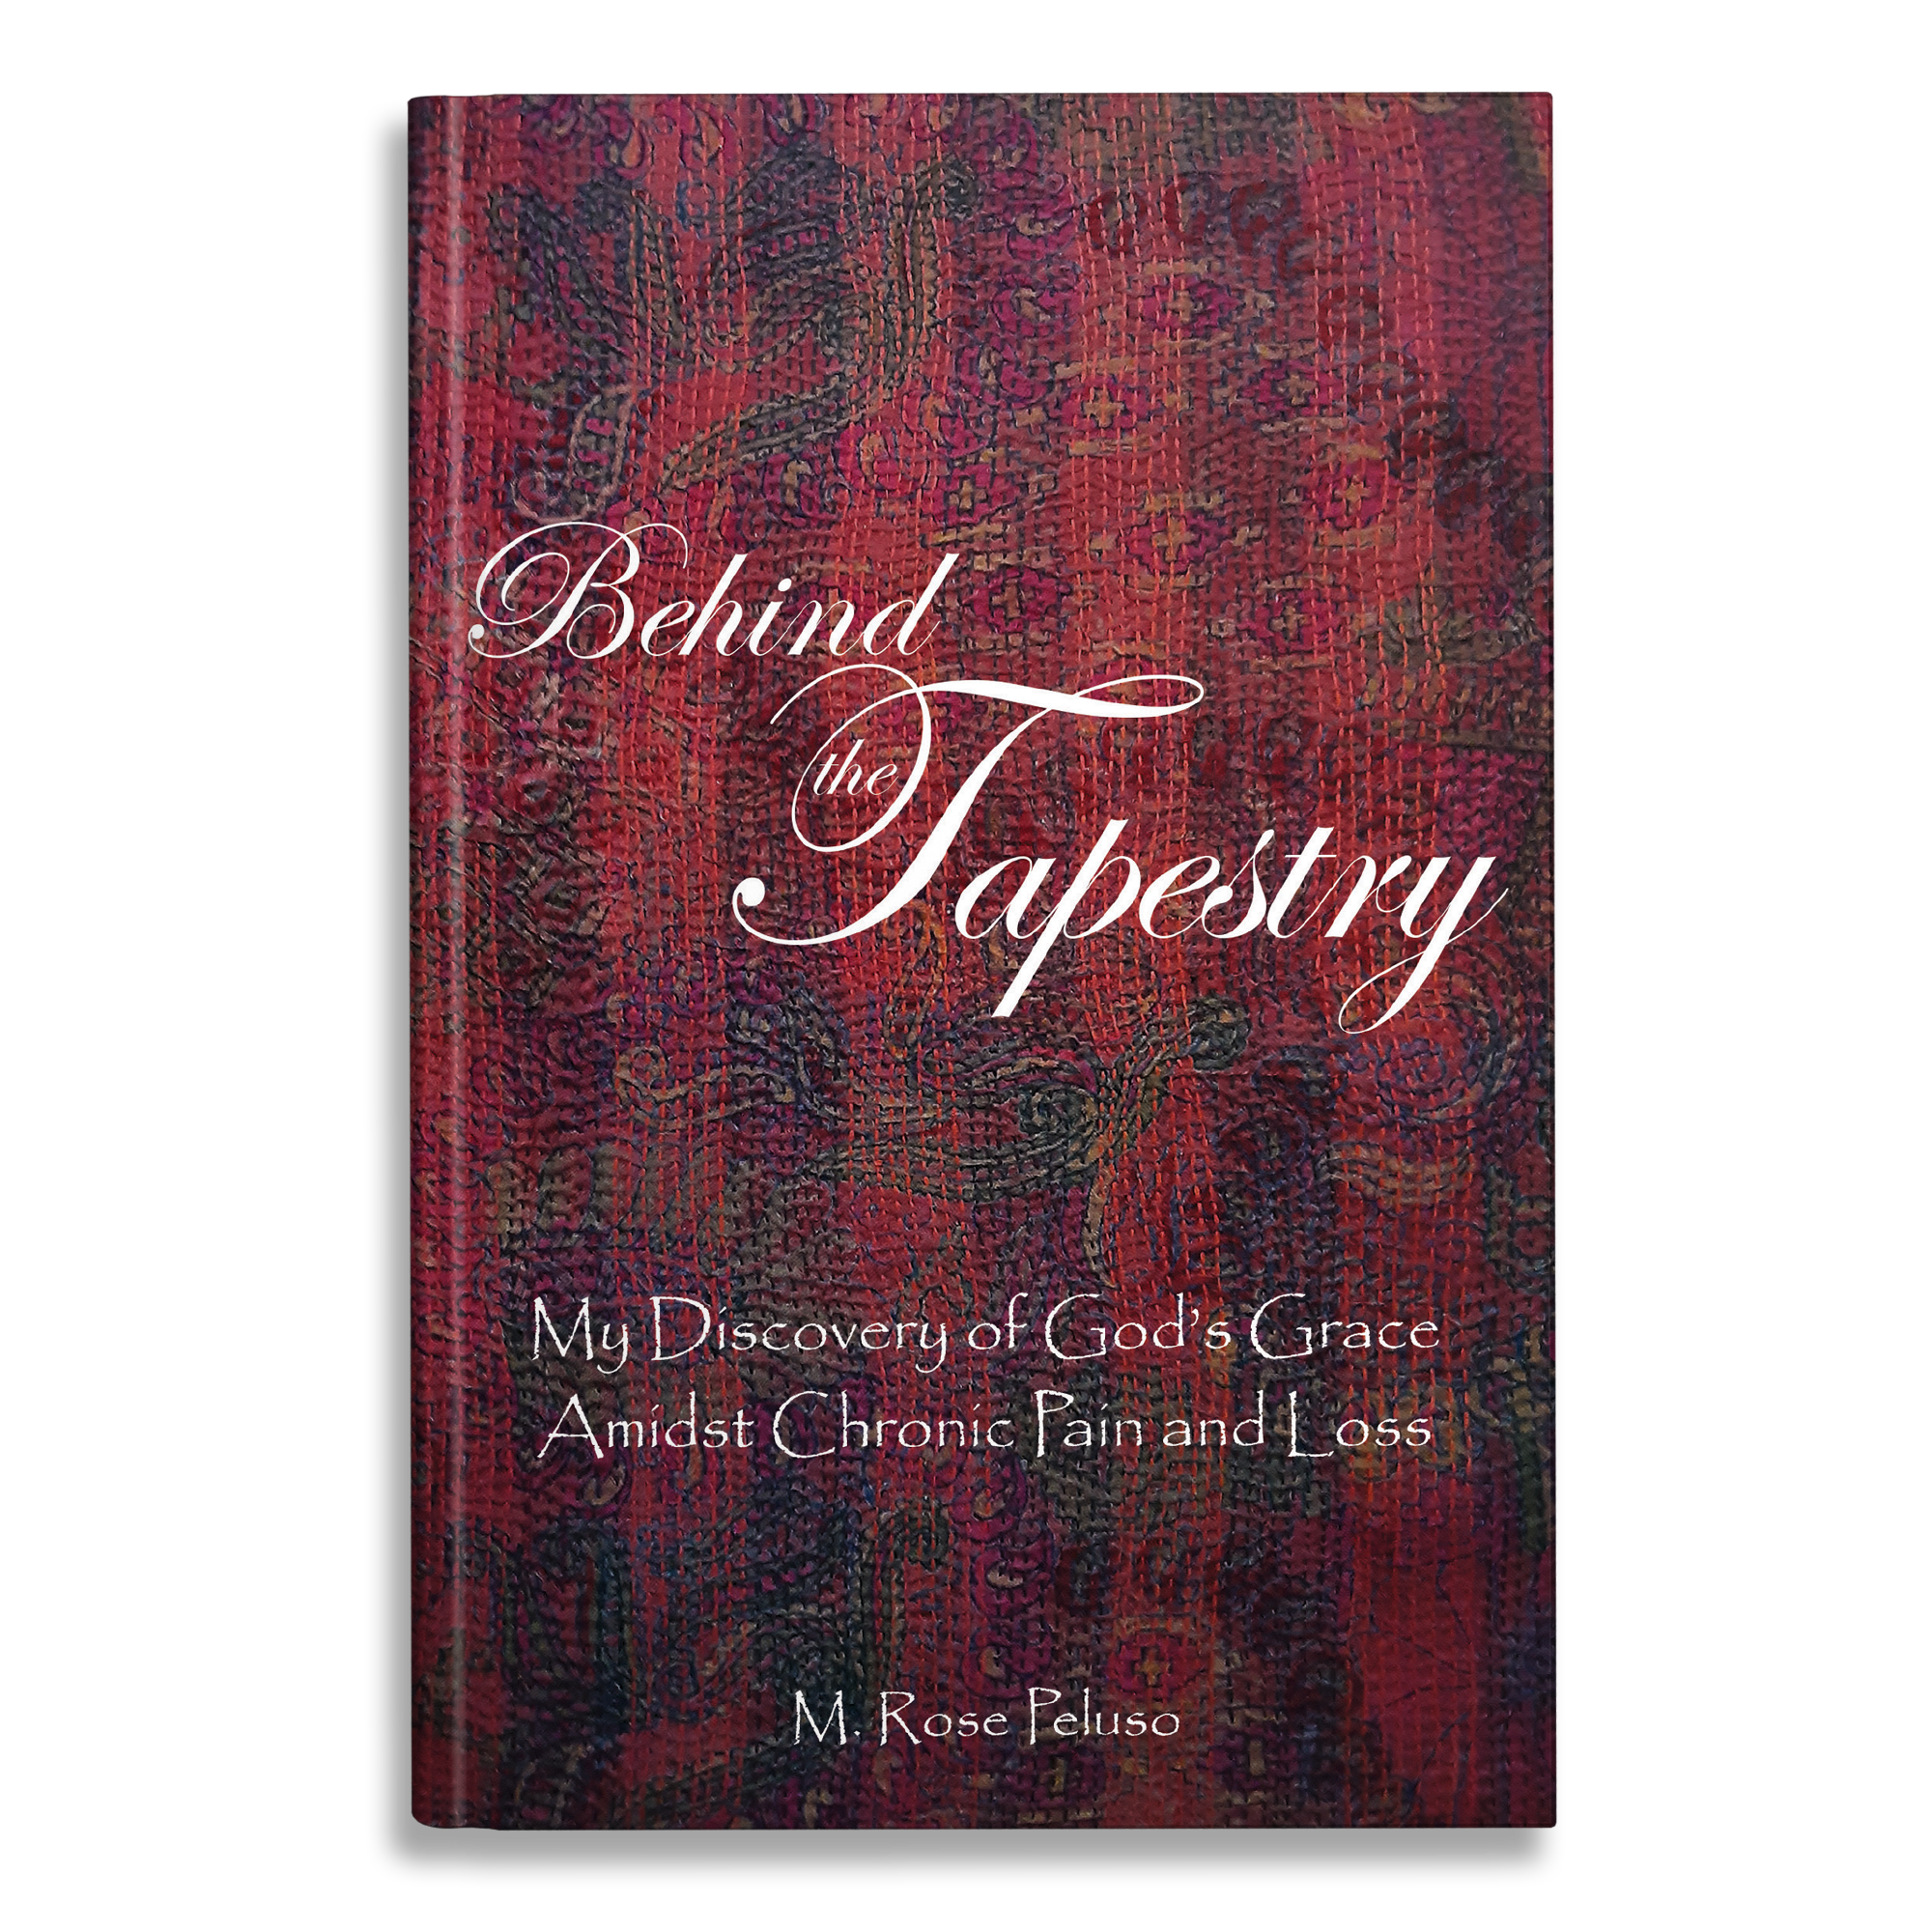 Behind The Tapestry by M. Rose Peluso